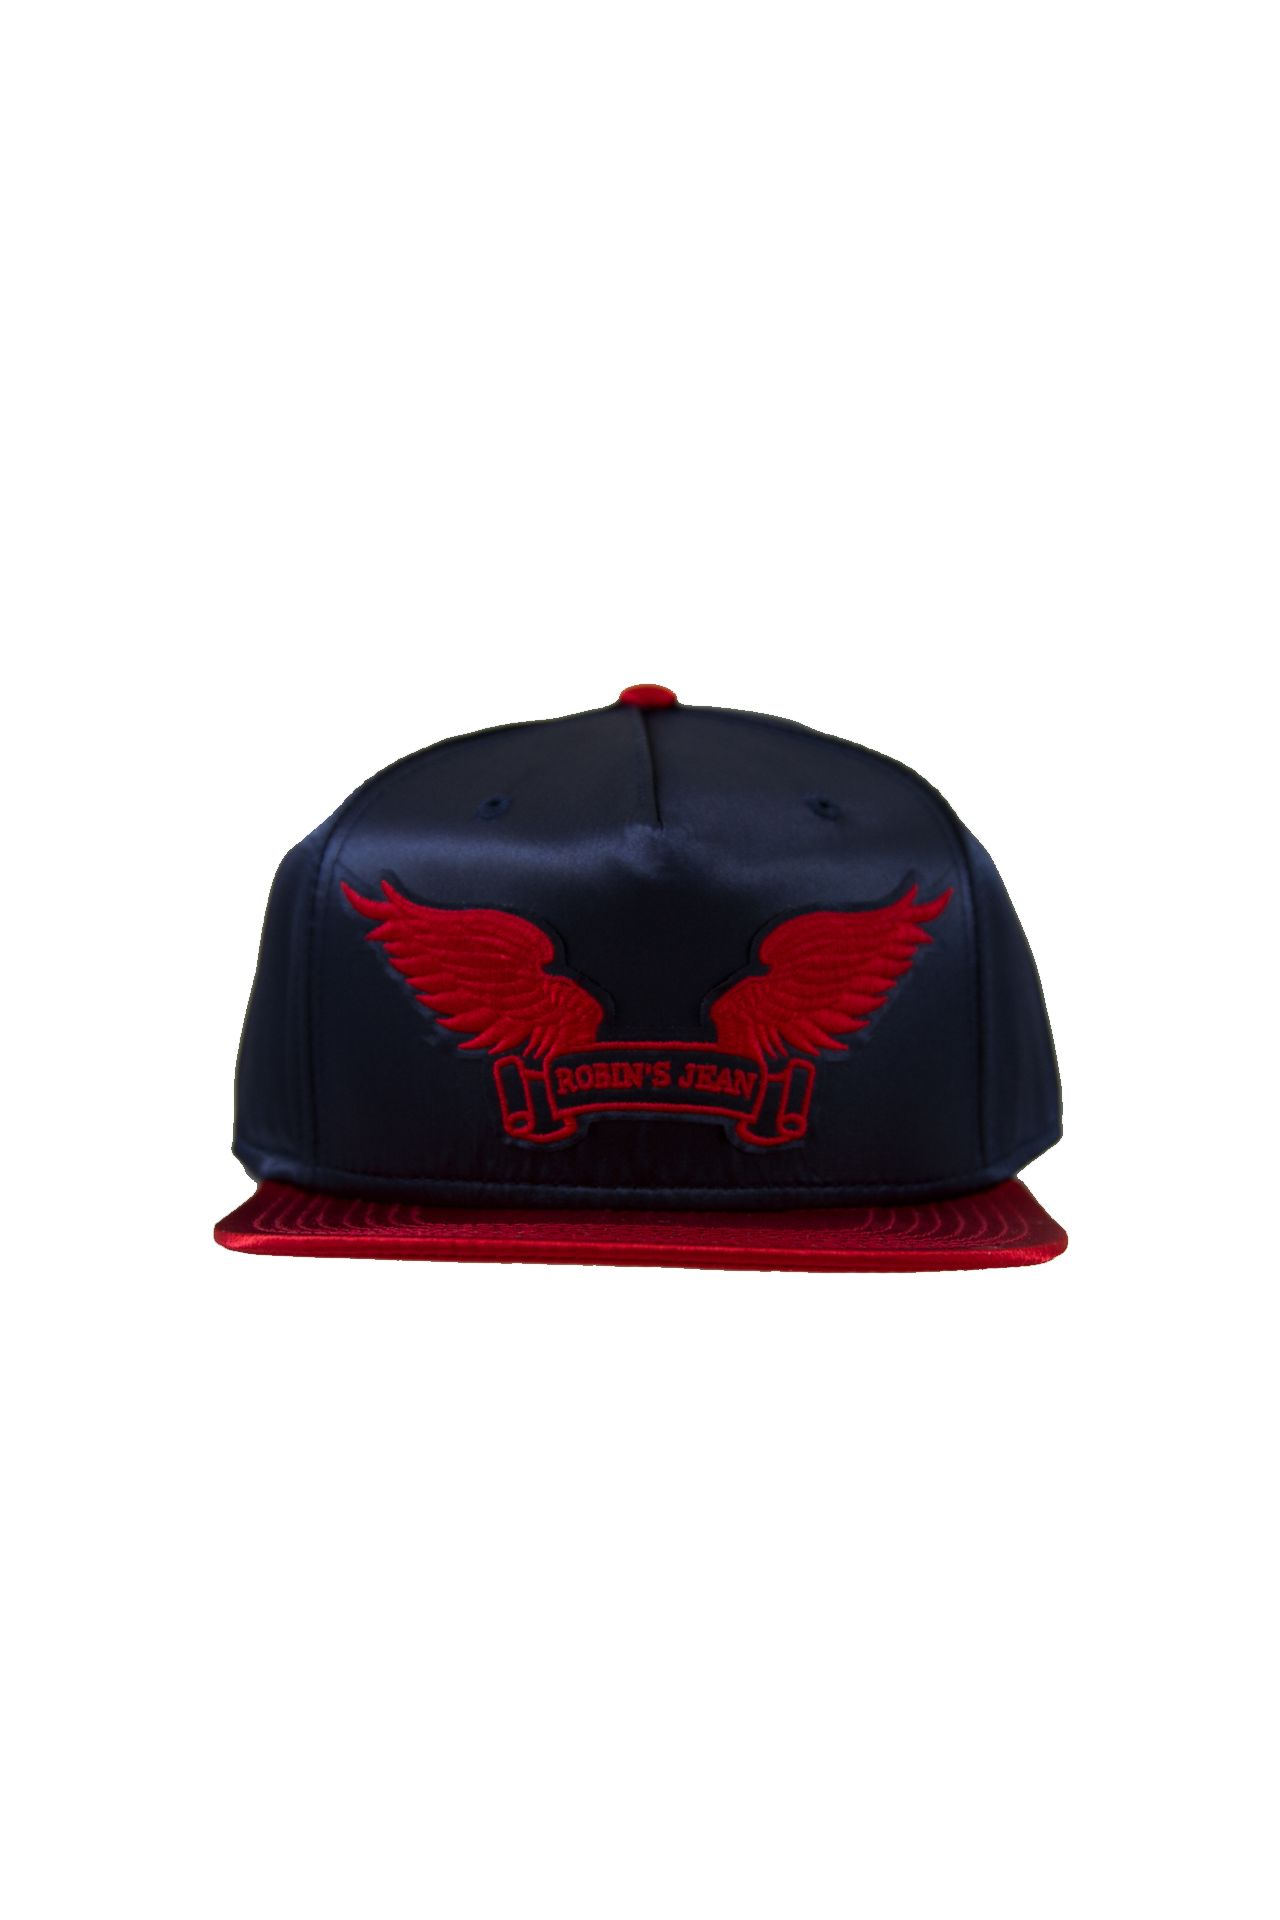 NAVY AND RED SATIN CAP